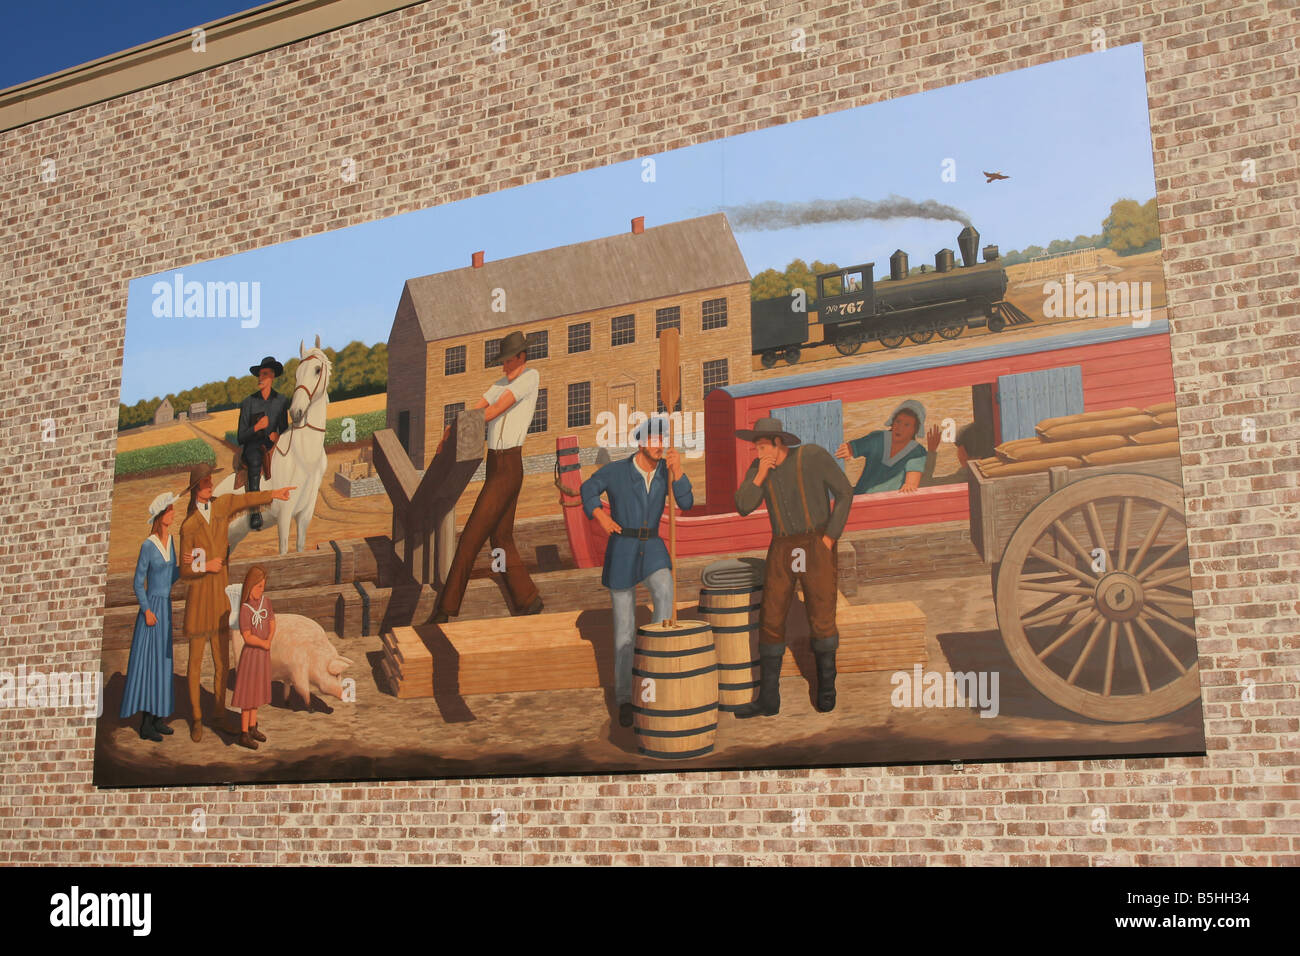 Painting of History Painting on a wall in St Marys Ohio depicting historic scenes Signed as Dan Keyes and Co October Stock Photo